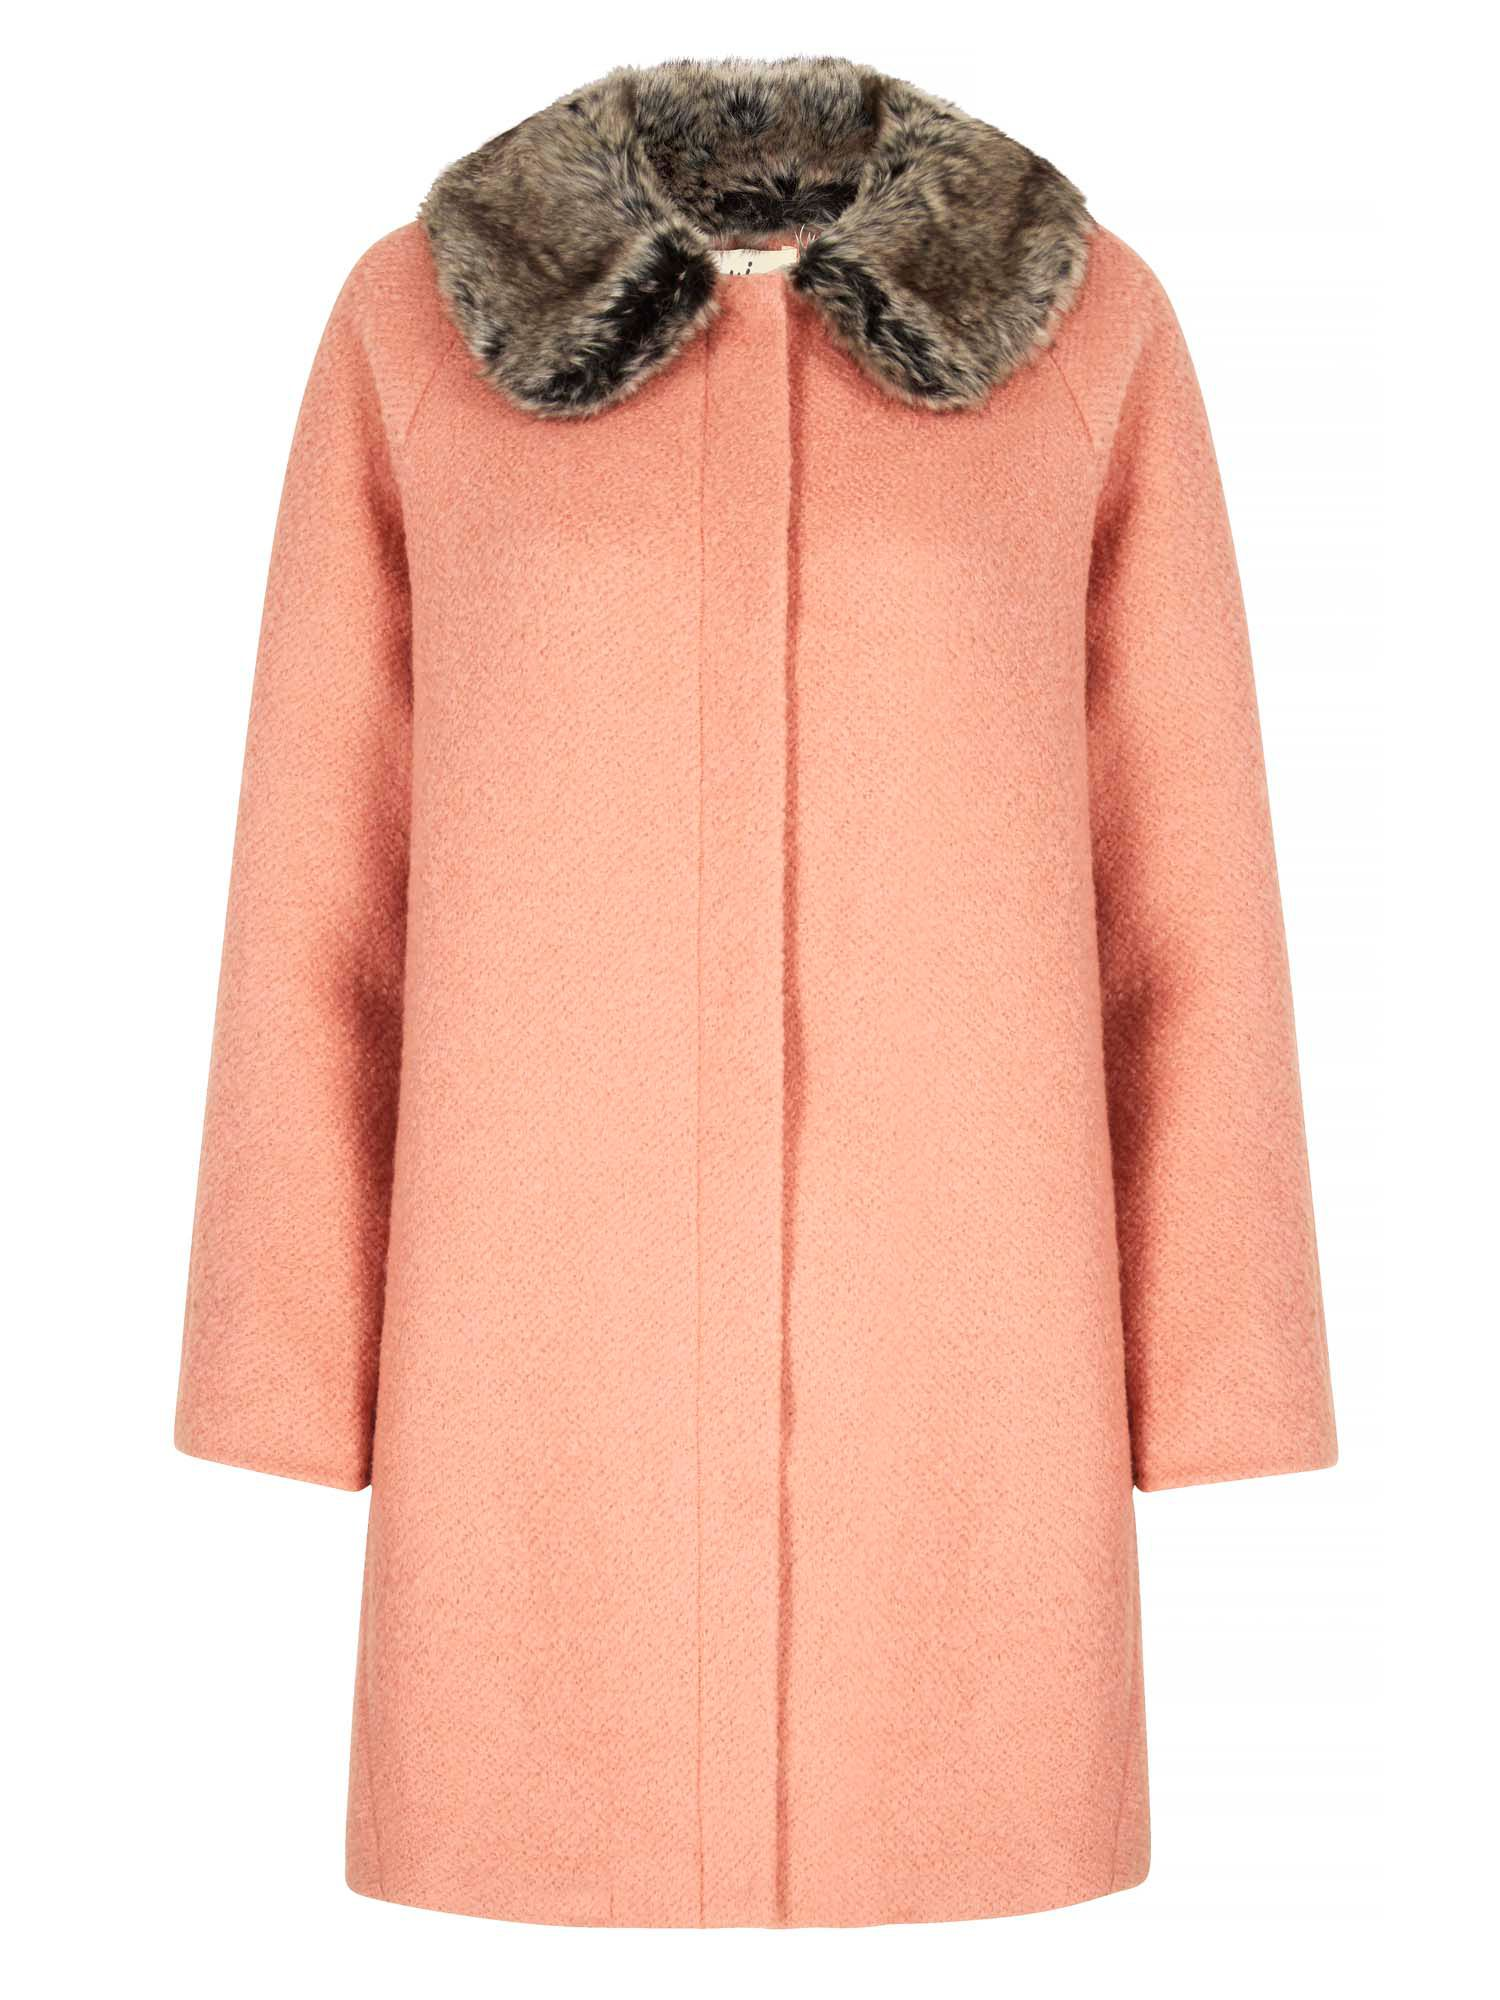 Shop 1960s Style Coats and Jackets Yumi Faux Fur Collared Cocoon Coat Coral £60.00 AT vintagedancer.com